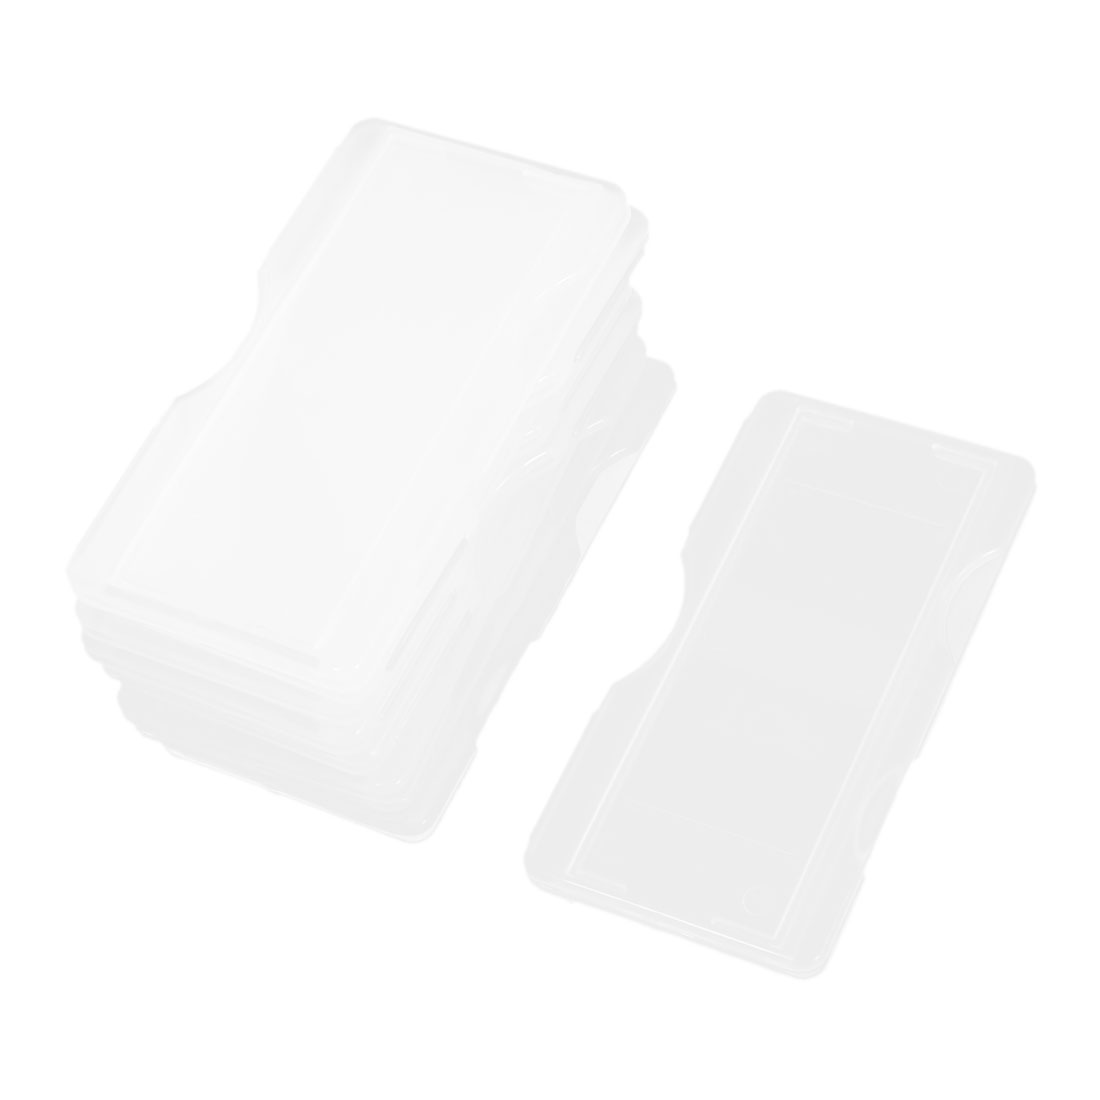 10 Pcs Laboratory Lab Microscope Glass Slides Plastic Storage Box Holder